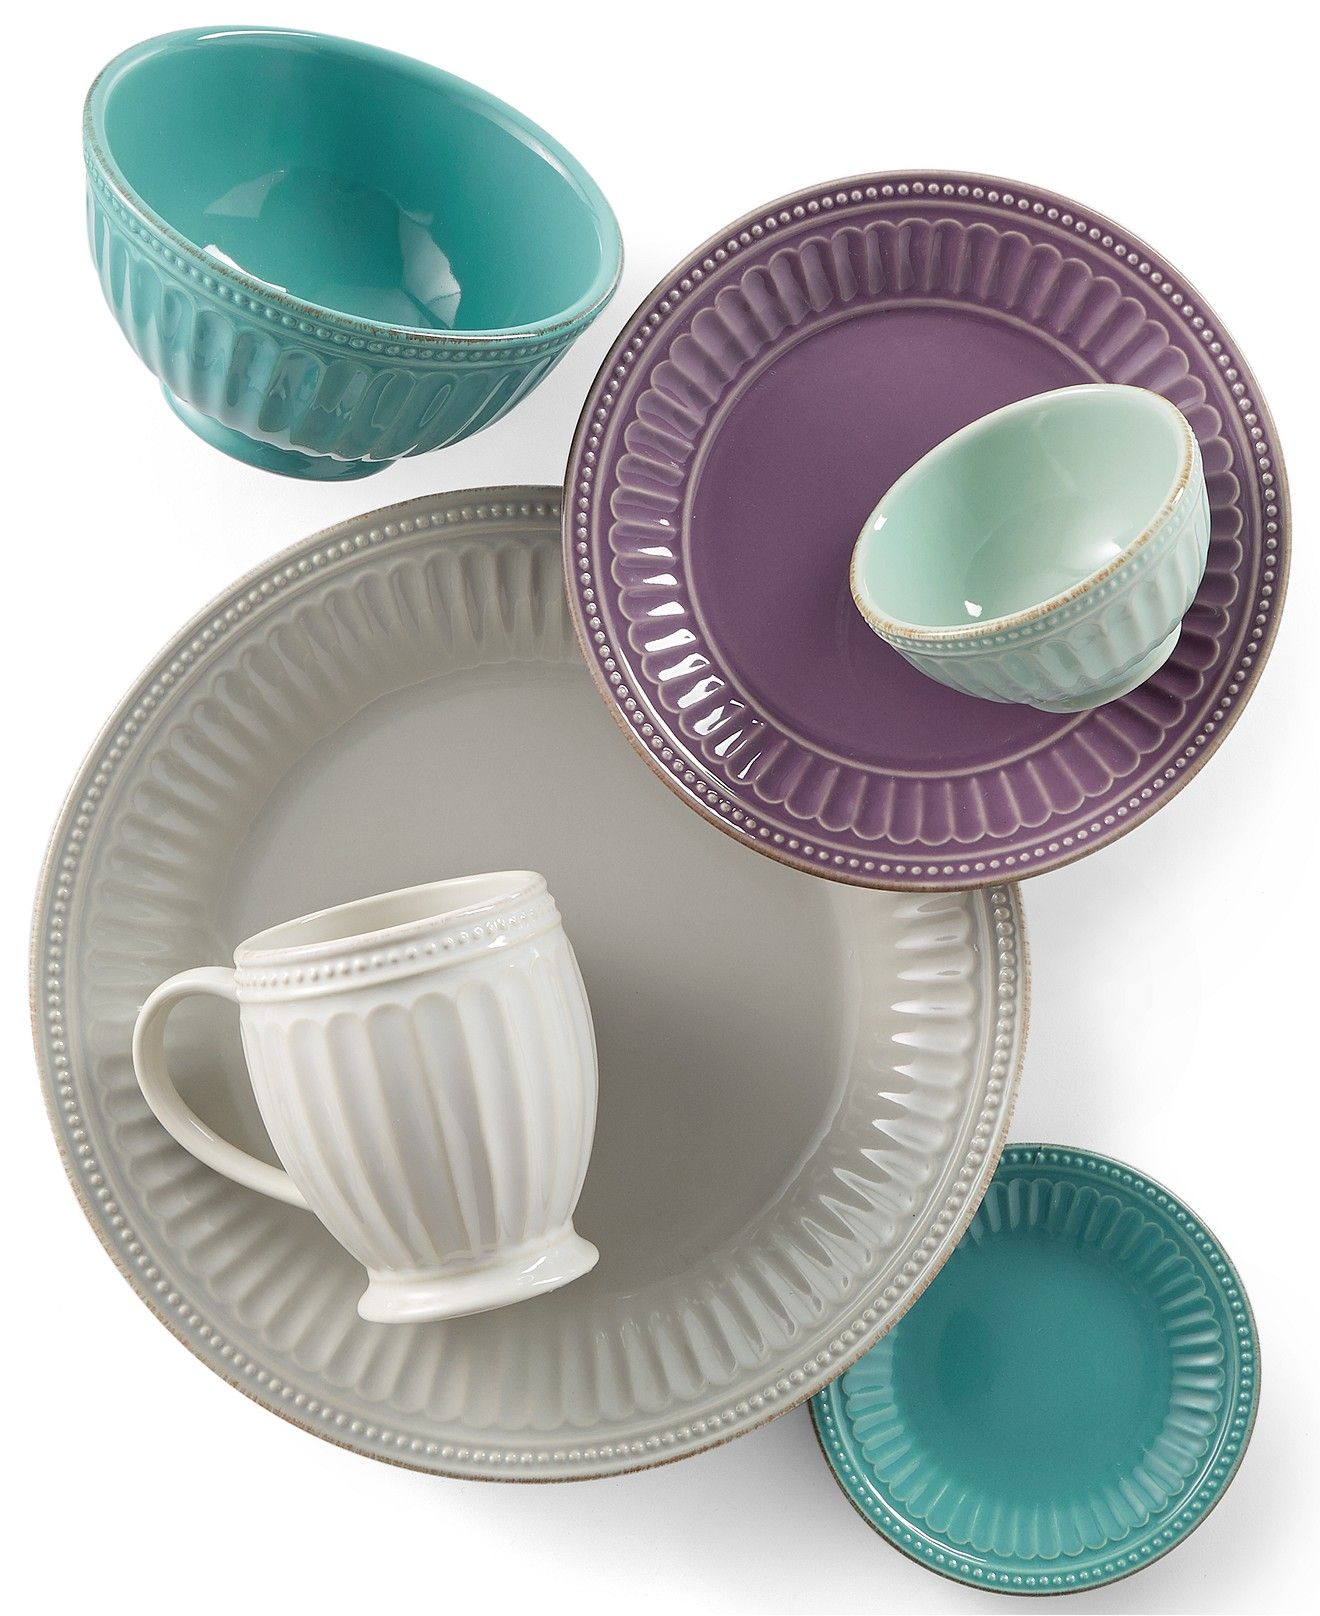 Macy Wedding Gifts: Lenox French Perle Groove Dinnerware Collection & Reviews